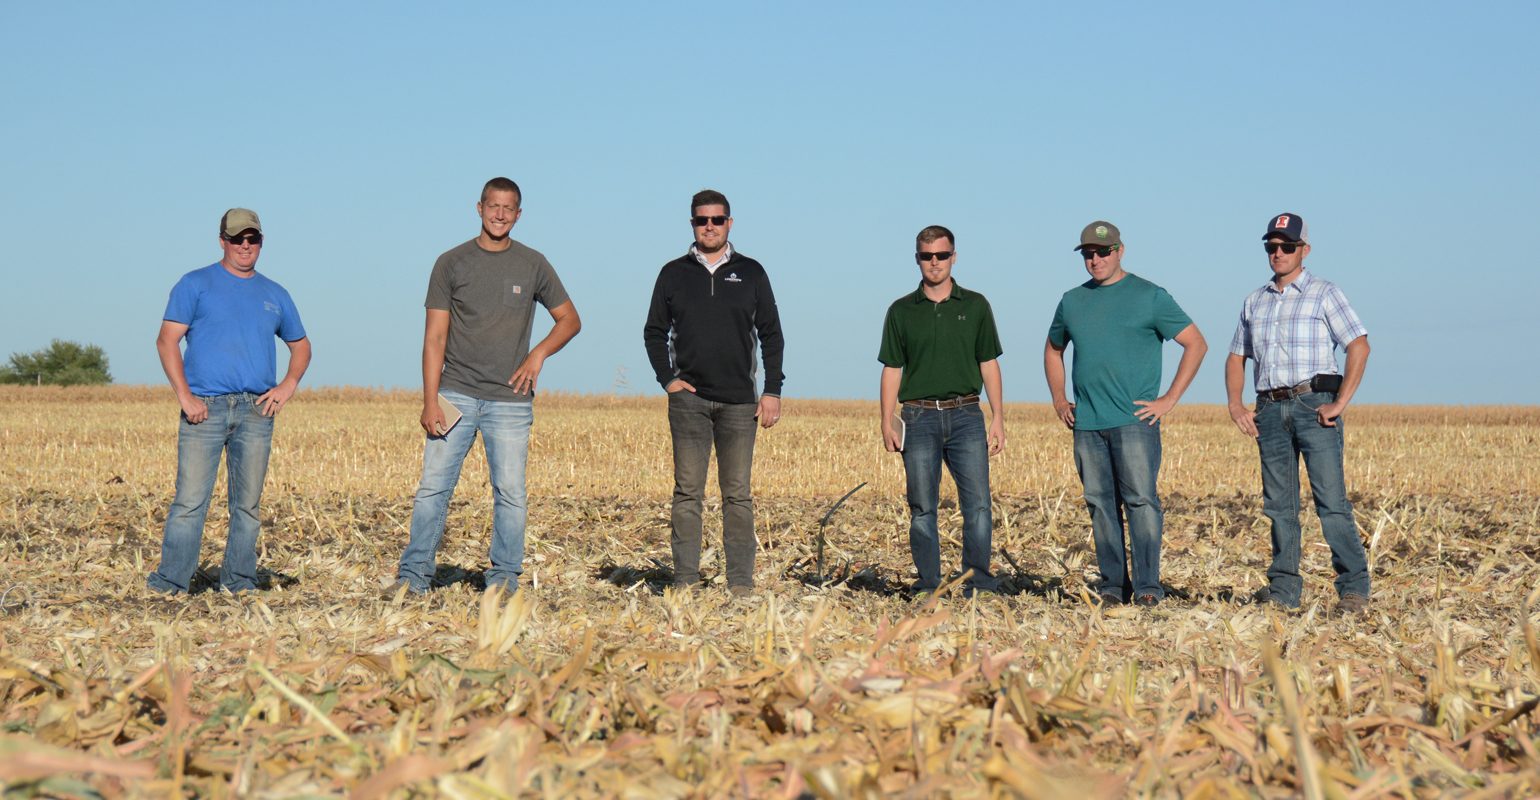 Farmers from the Midwest converged on the Farm Progress Show site near Boone, Iowa, to assess ag equipment.